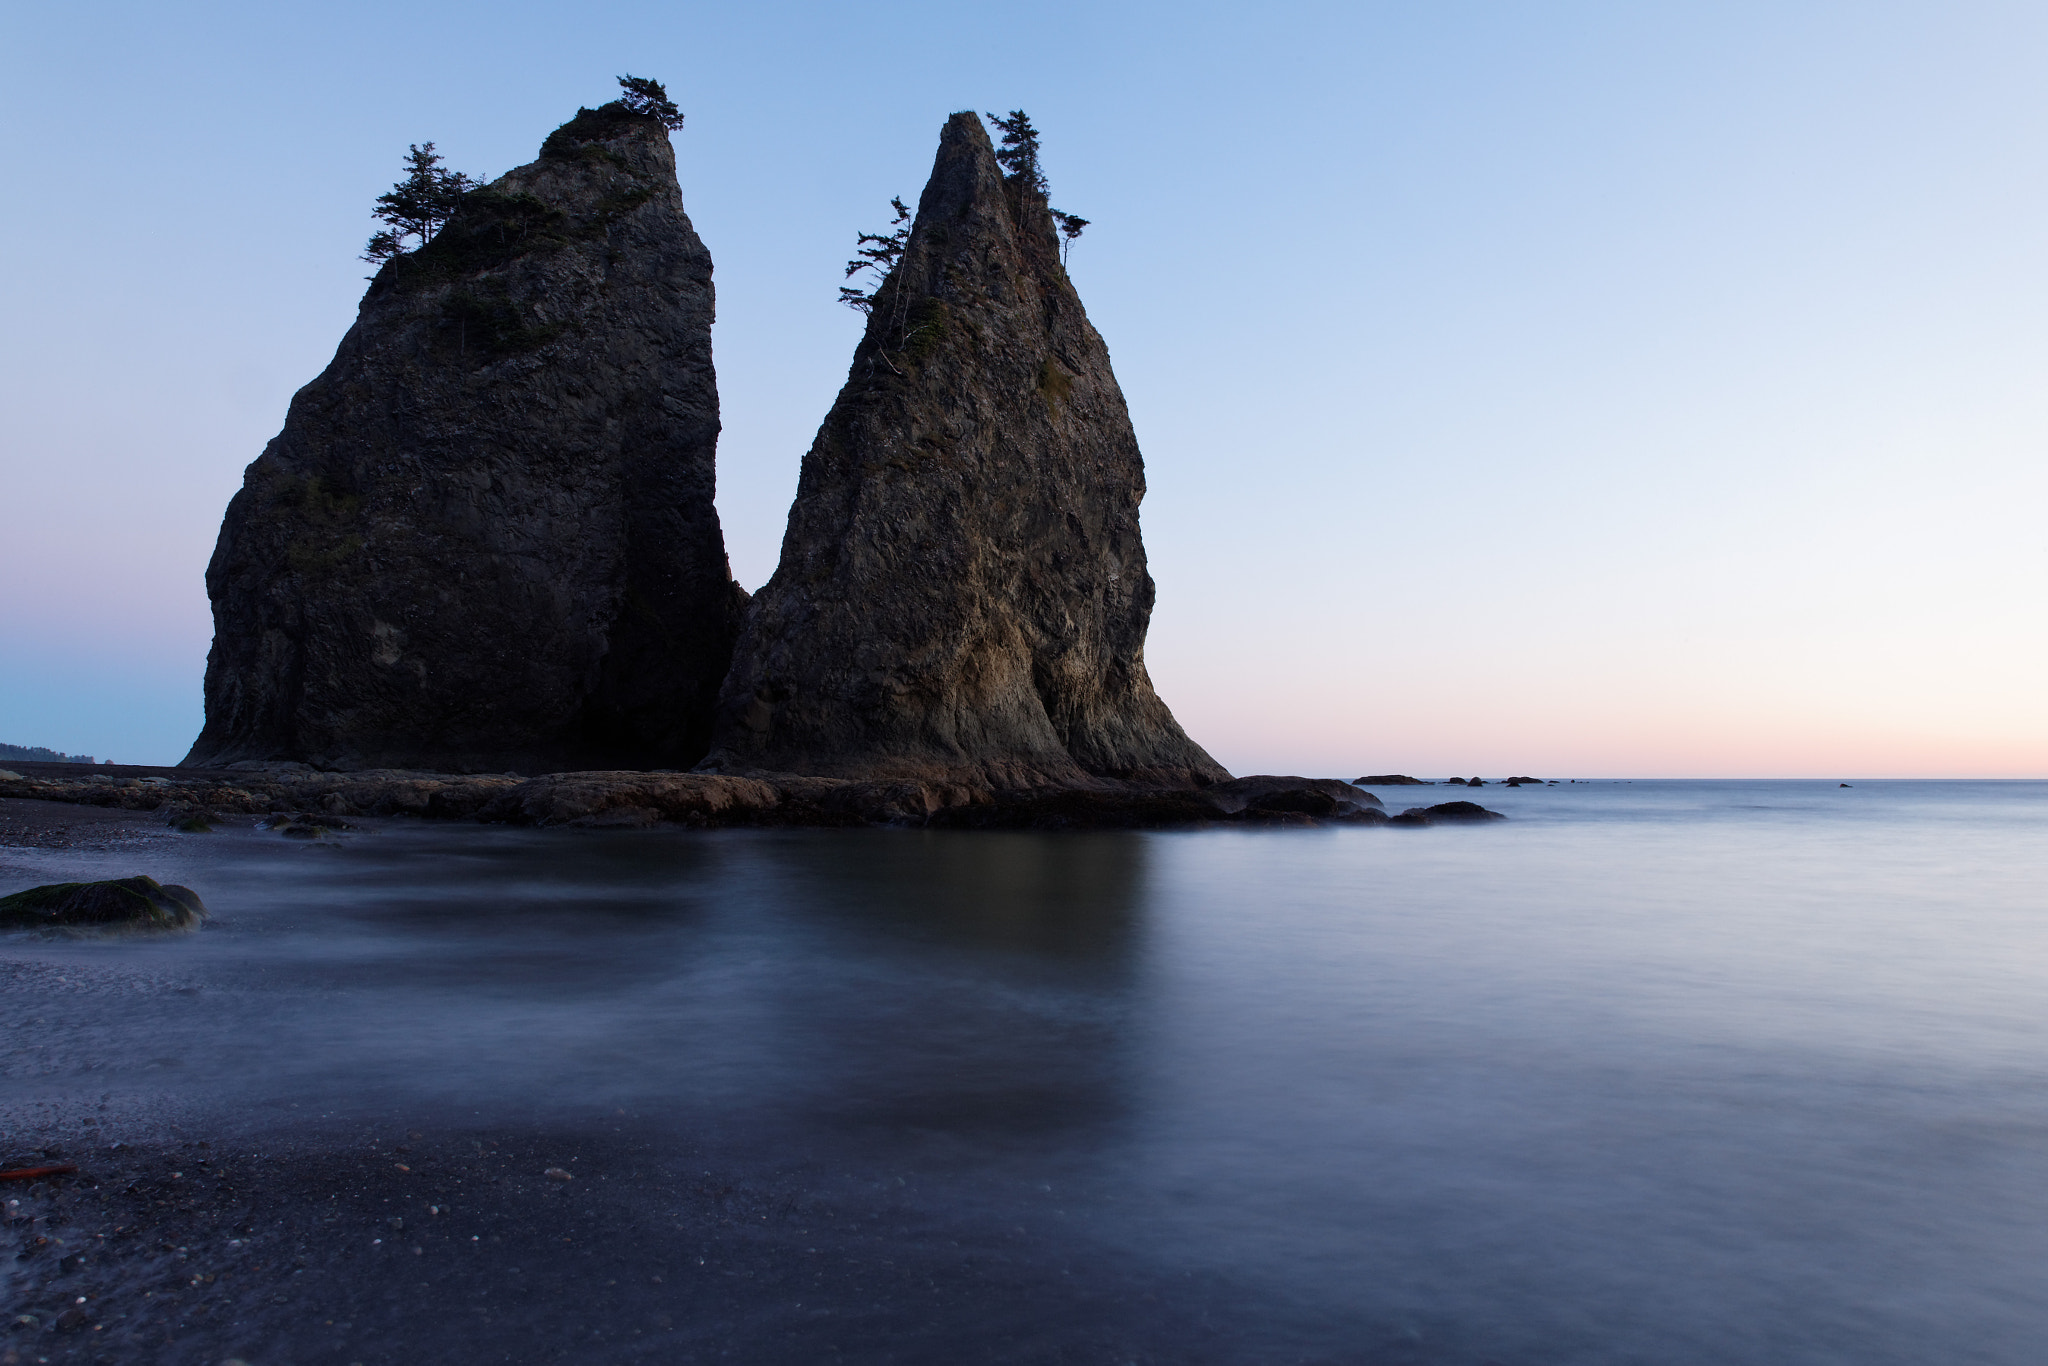 Photograph Sea stack at dusk, Rialto Beach, Olympic National Park, Washington State, USA by Brad Mitchell on 500px